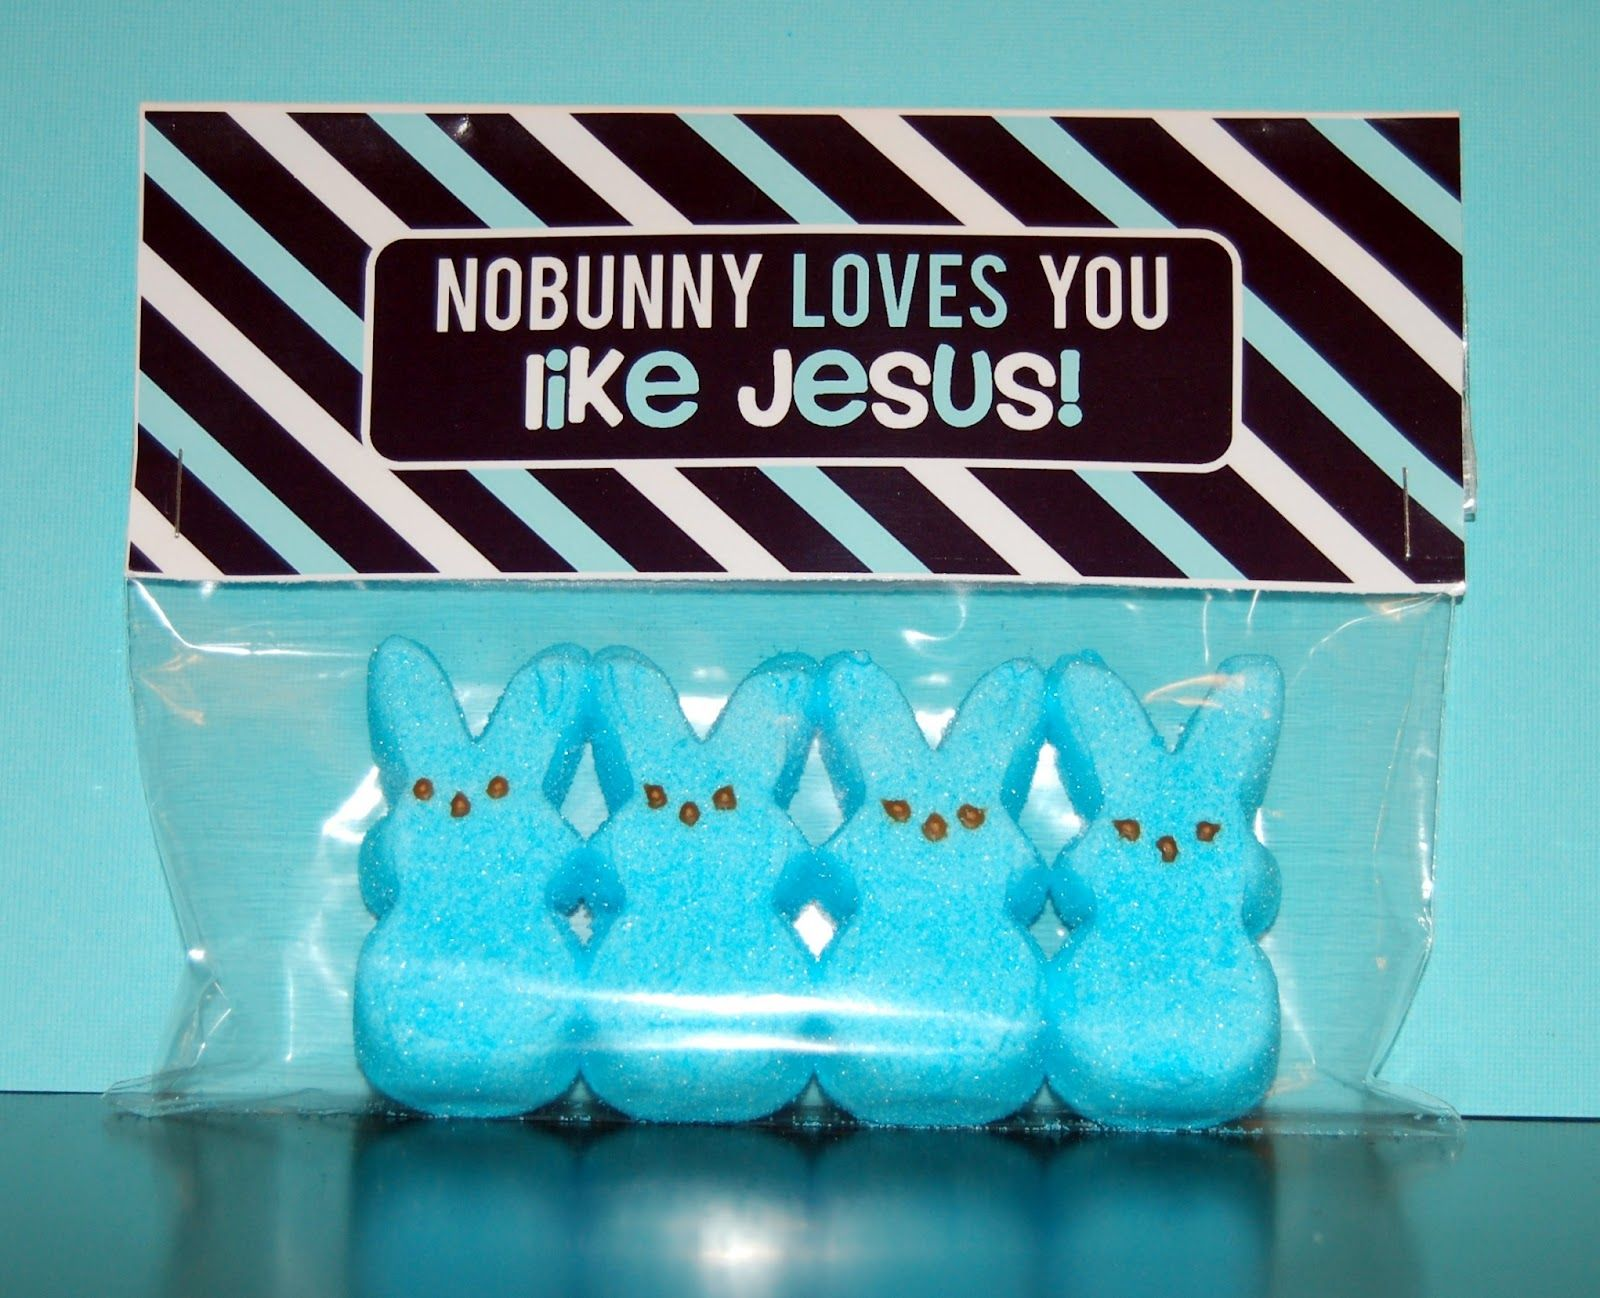 Bunny crafts easter baskets easter and diva this free no bunny loves you like jesus easter printable would be a cute idea for a sunday school class or as treats to give away to the children who come negle Choice Image